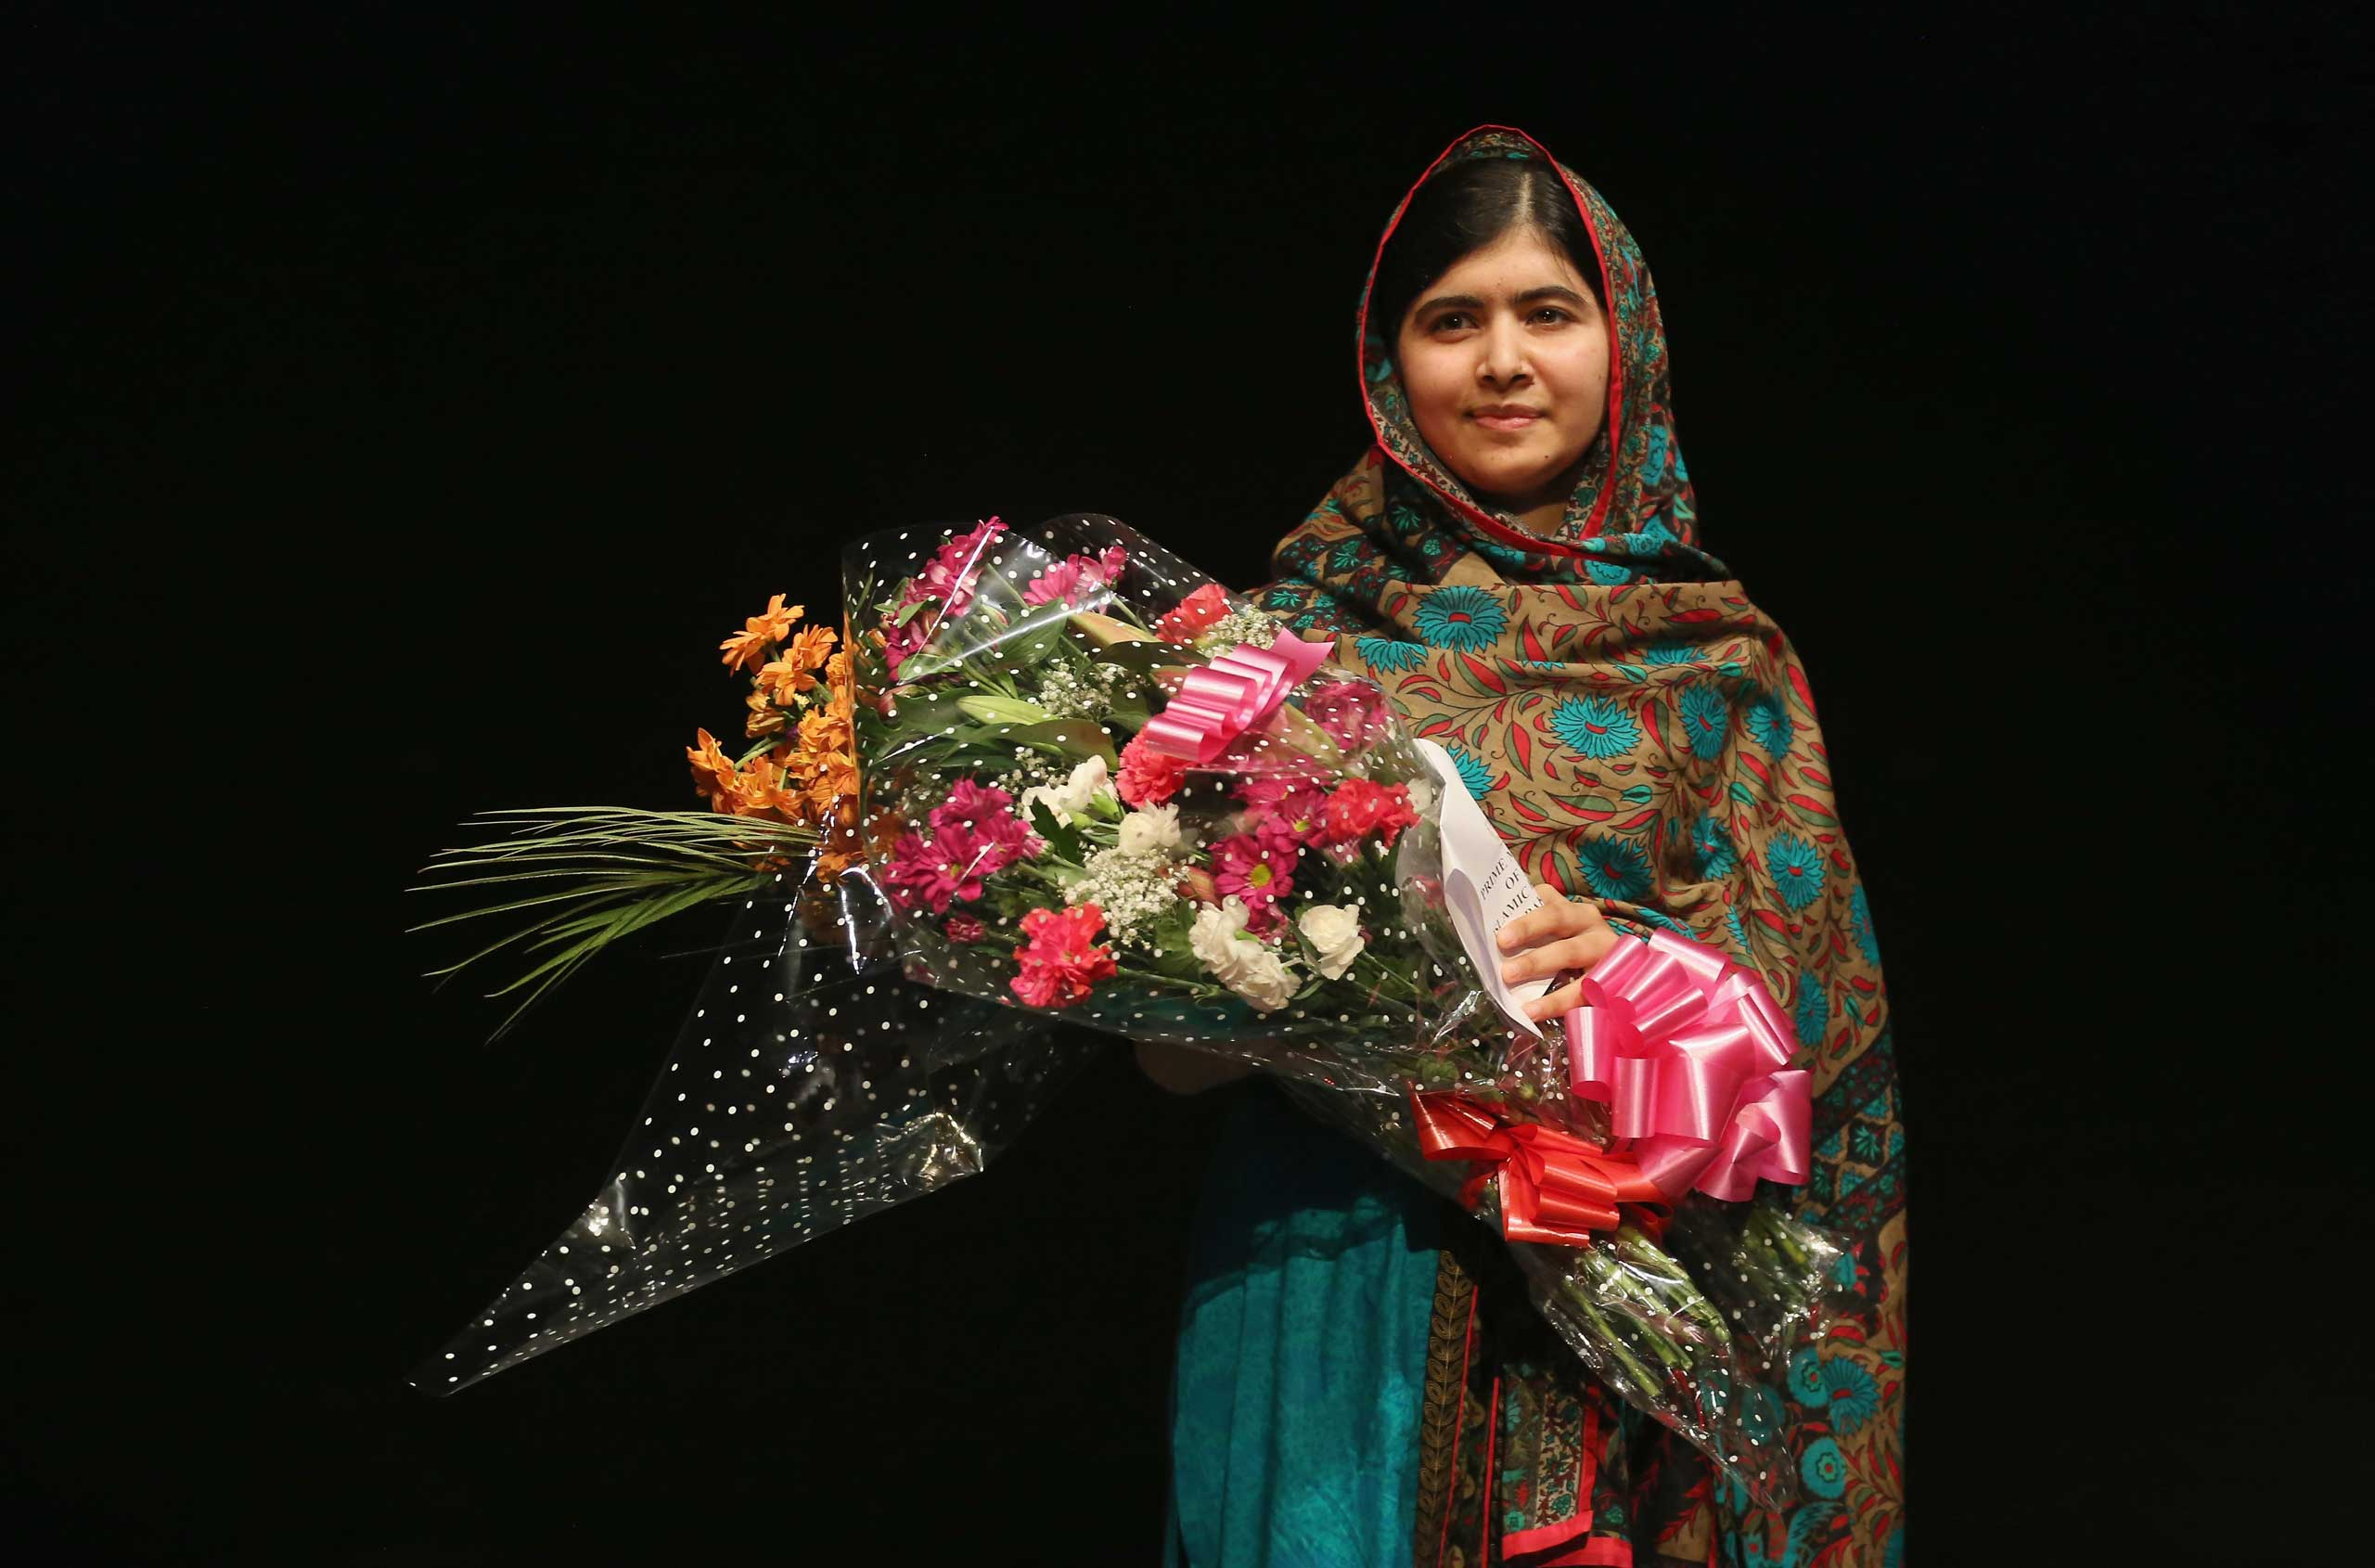 Malala Yousafzai after being announced as a recipient of the Nobel Peace Prize in Birmingham, England on Oct. 10, 2014.